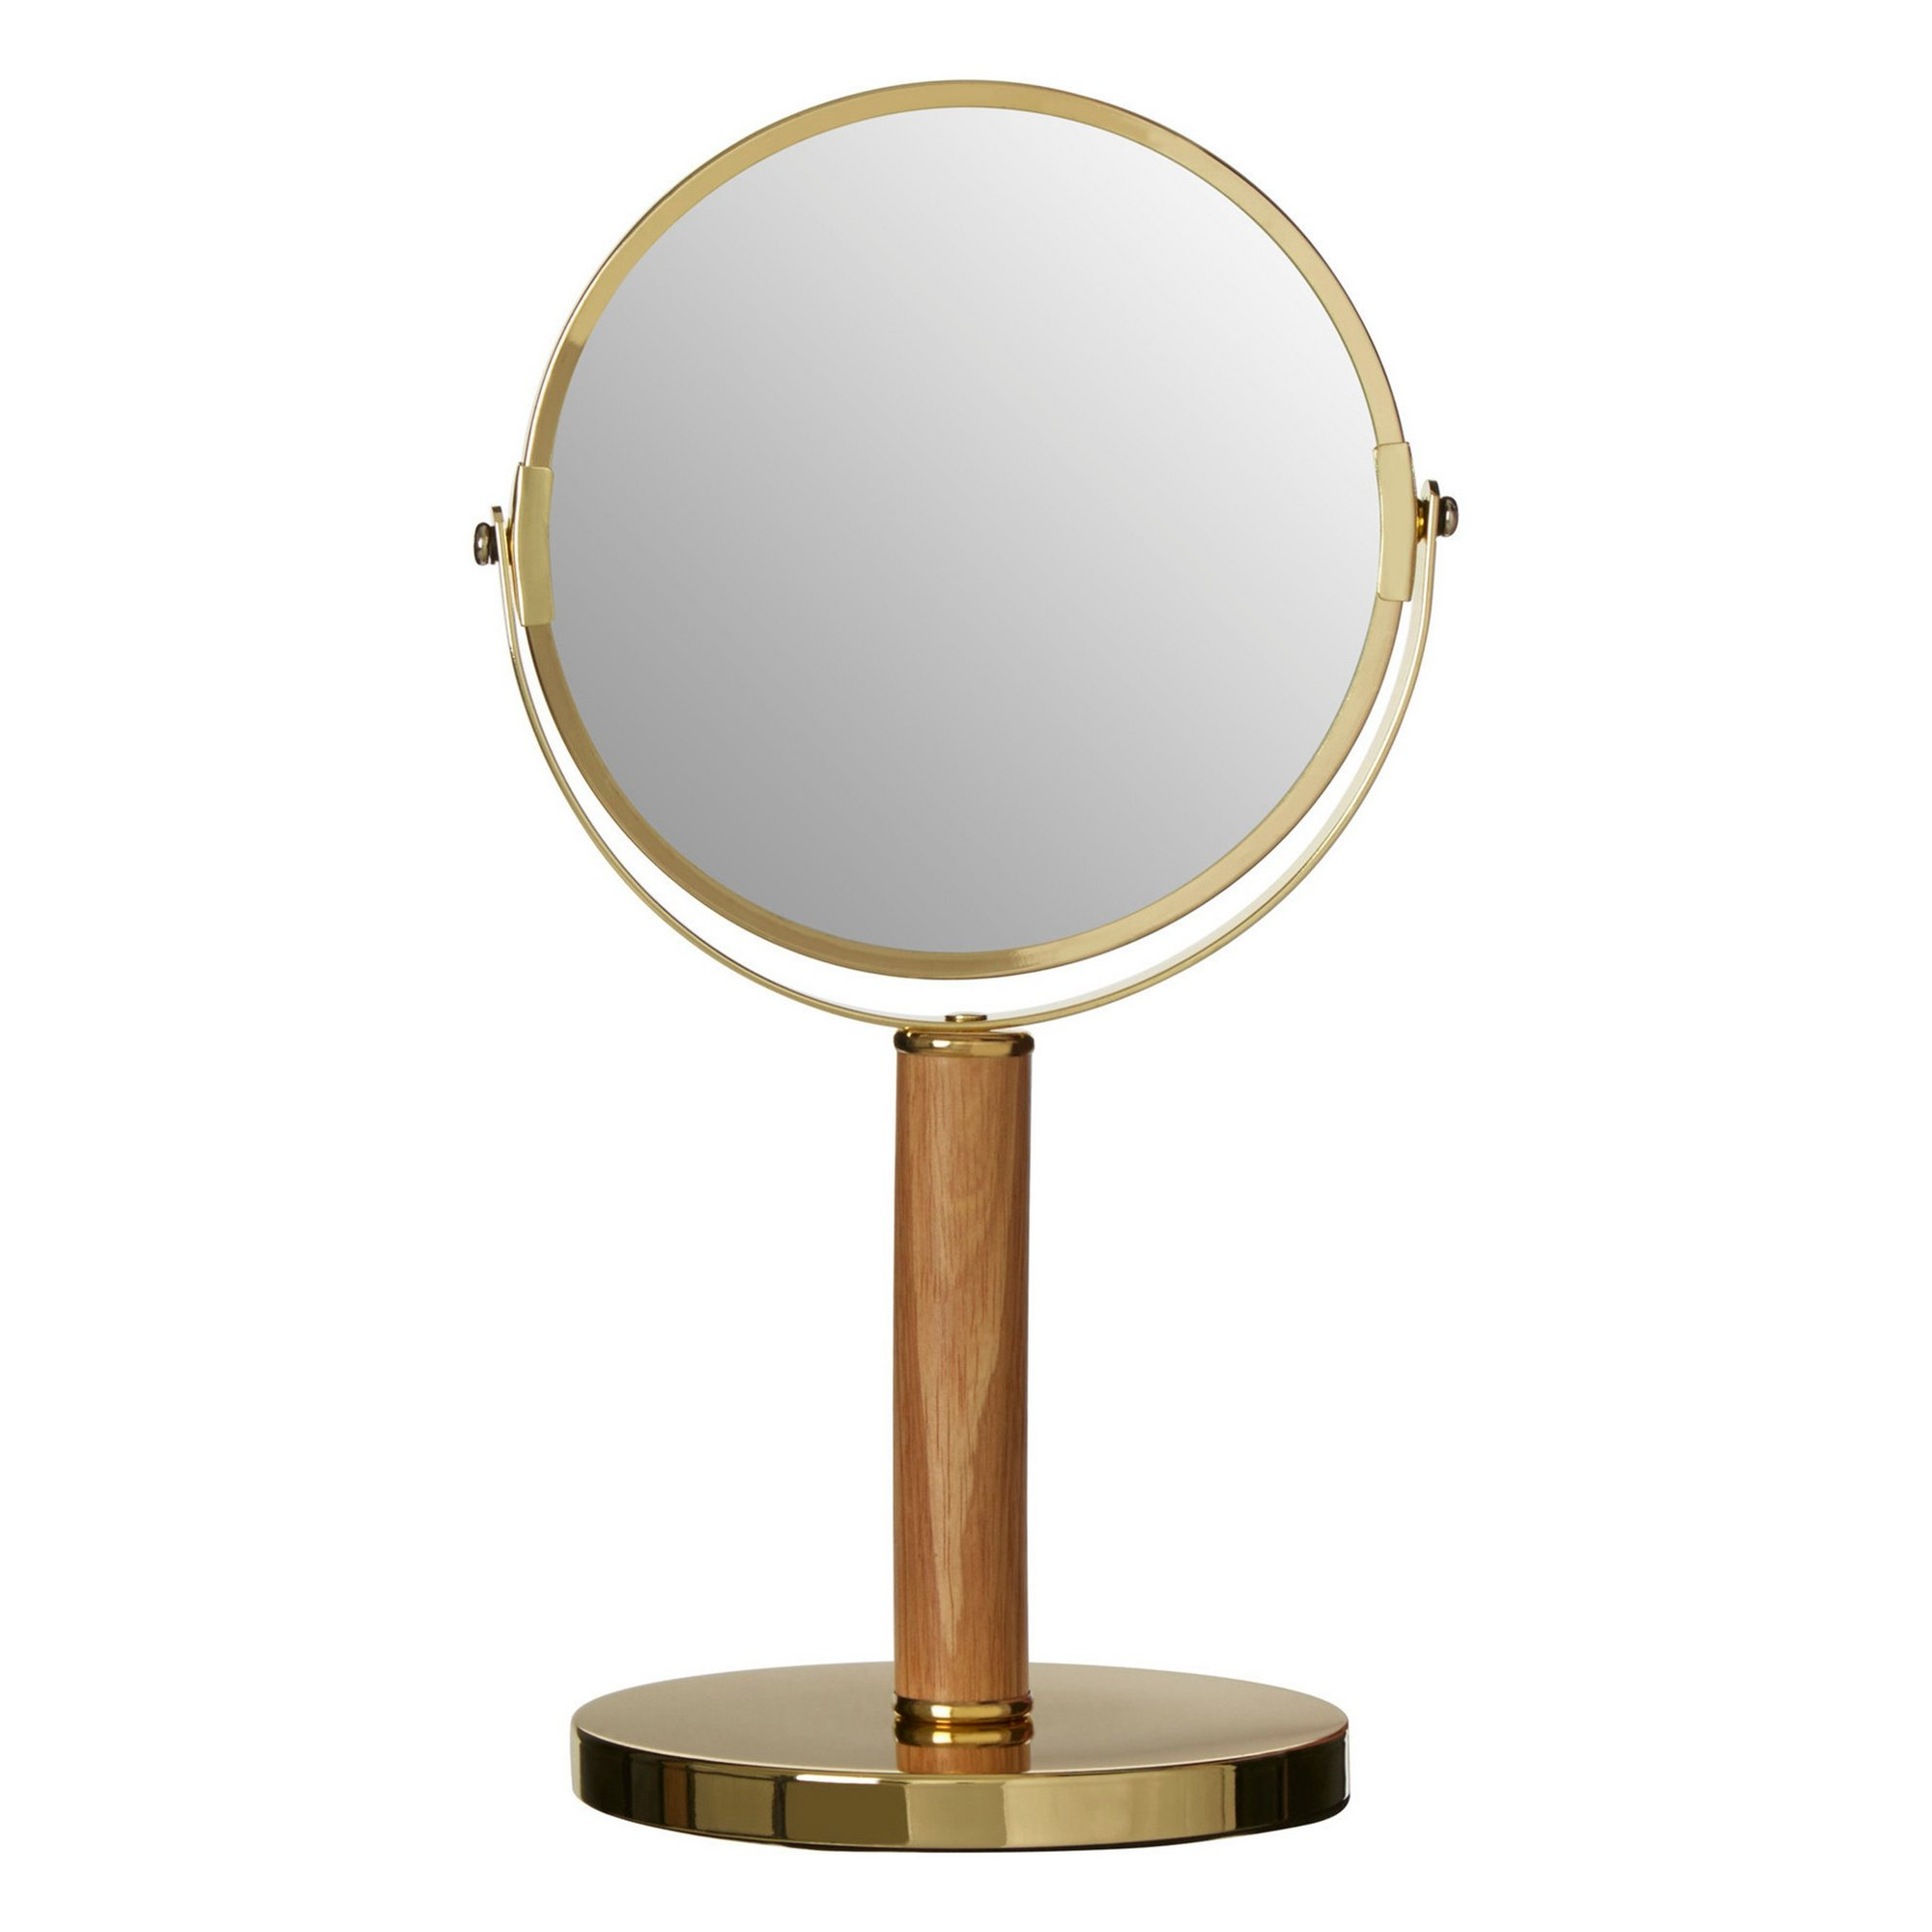 Image of Cassini Table Standing Mirror